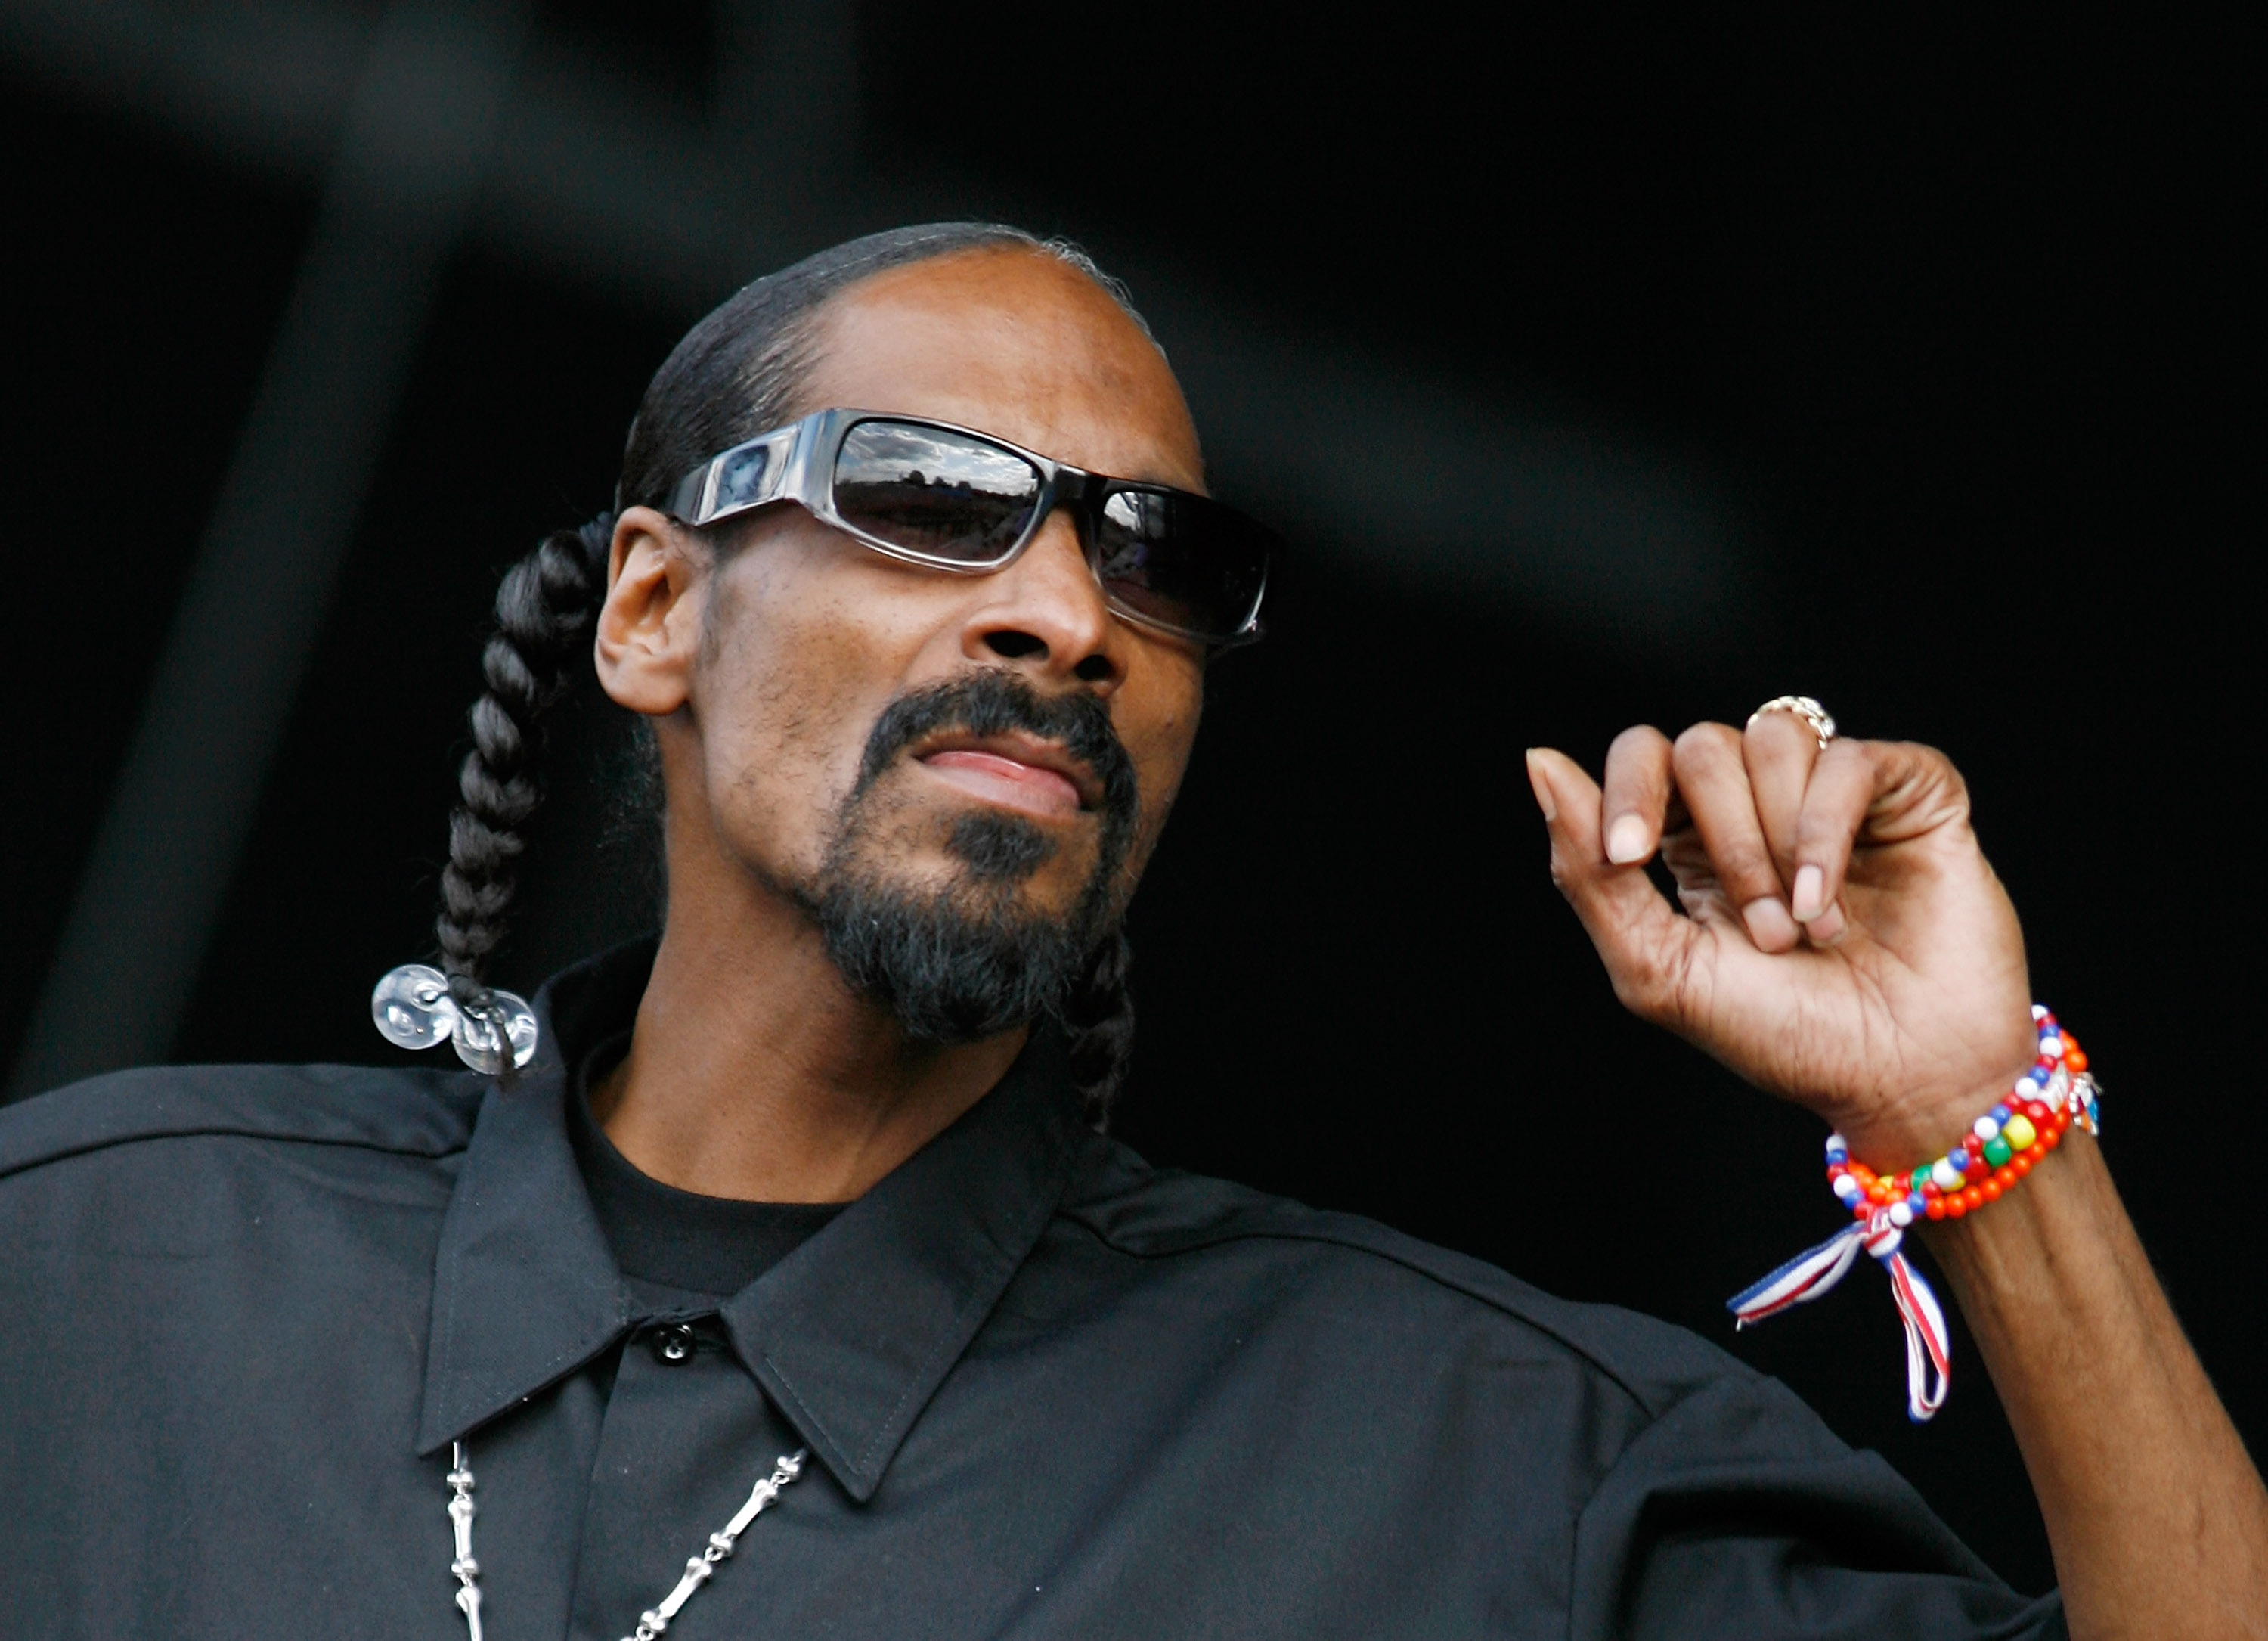 Snoop Dogg Wallpapers Images Photos Pictures Backgrounds